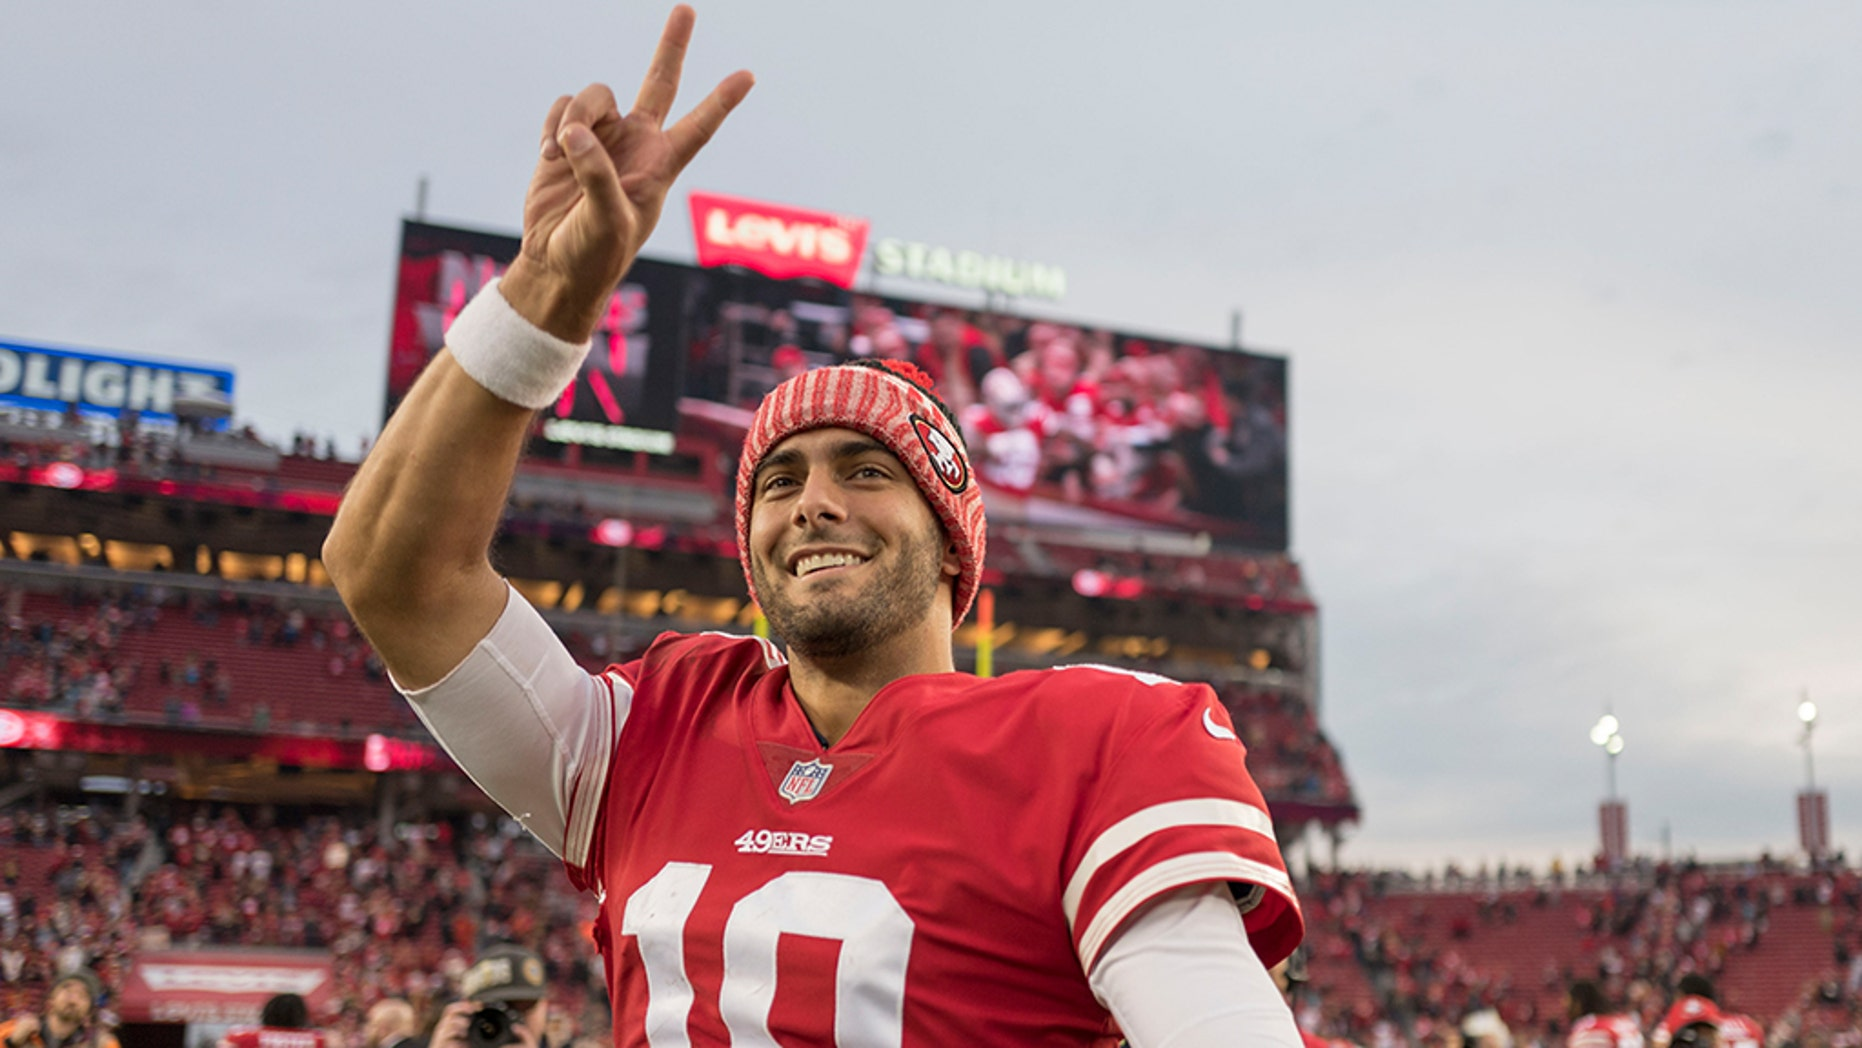 San Francisco 49ers quarterback Jimmy Garoppolo, who tore his ACL while making a cut late in a loss at Kansas City Sunday, will need season-ending surgery on his injured left knee.